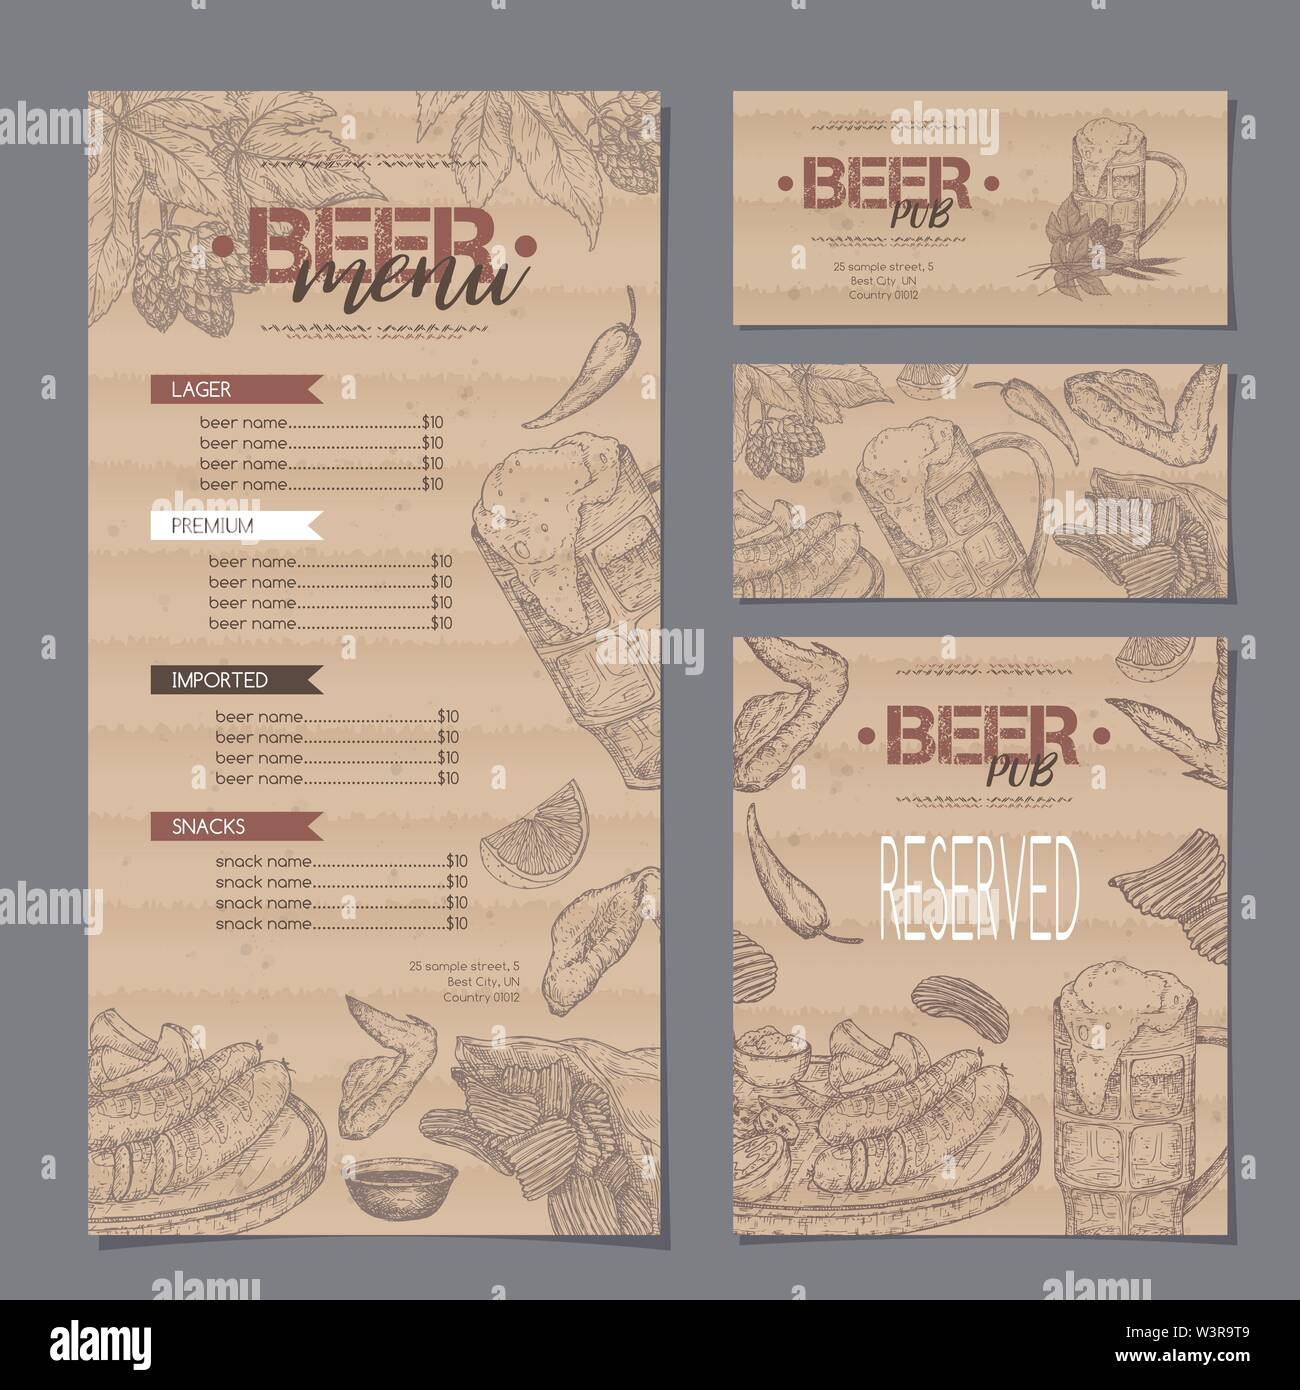 Beer bar menu and card templates featuring beer mug, hop branch, wheat, chips, chicken wings and snack plate. Great for bar, restaurant, cards and men - Stock Image